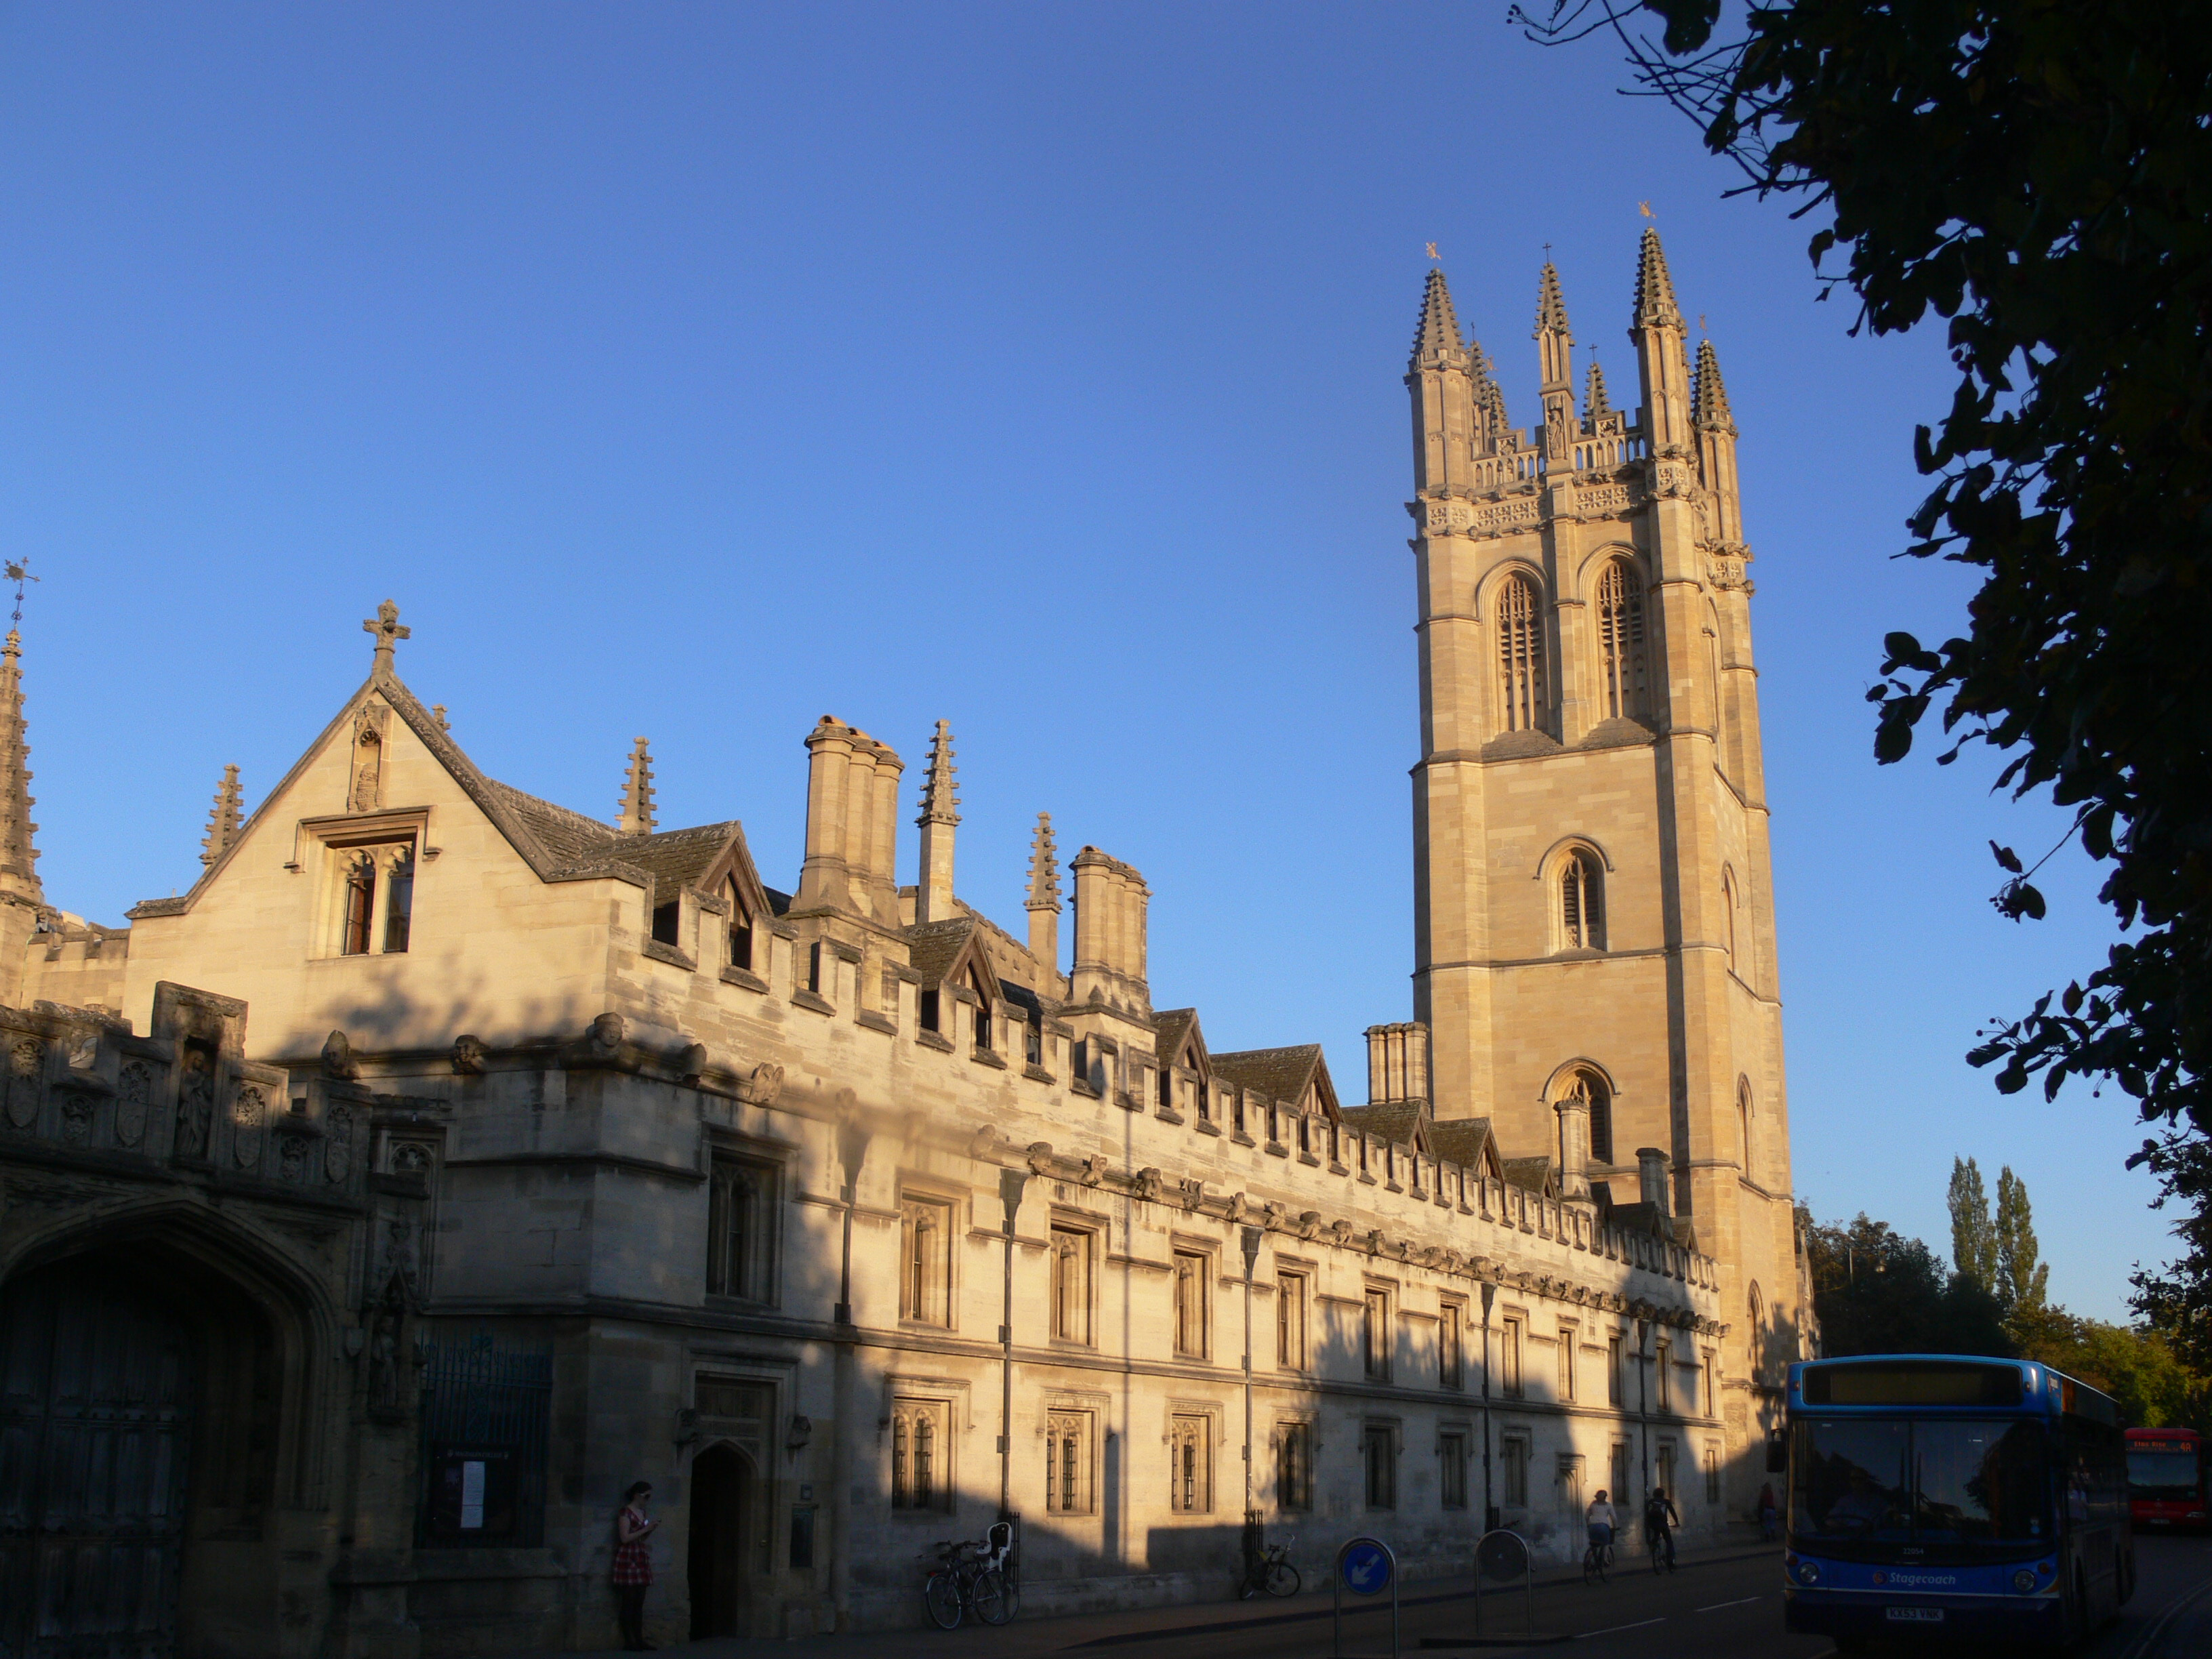 magdalen college or university oxford